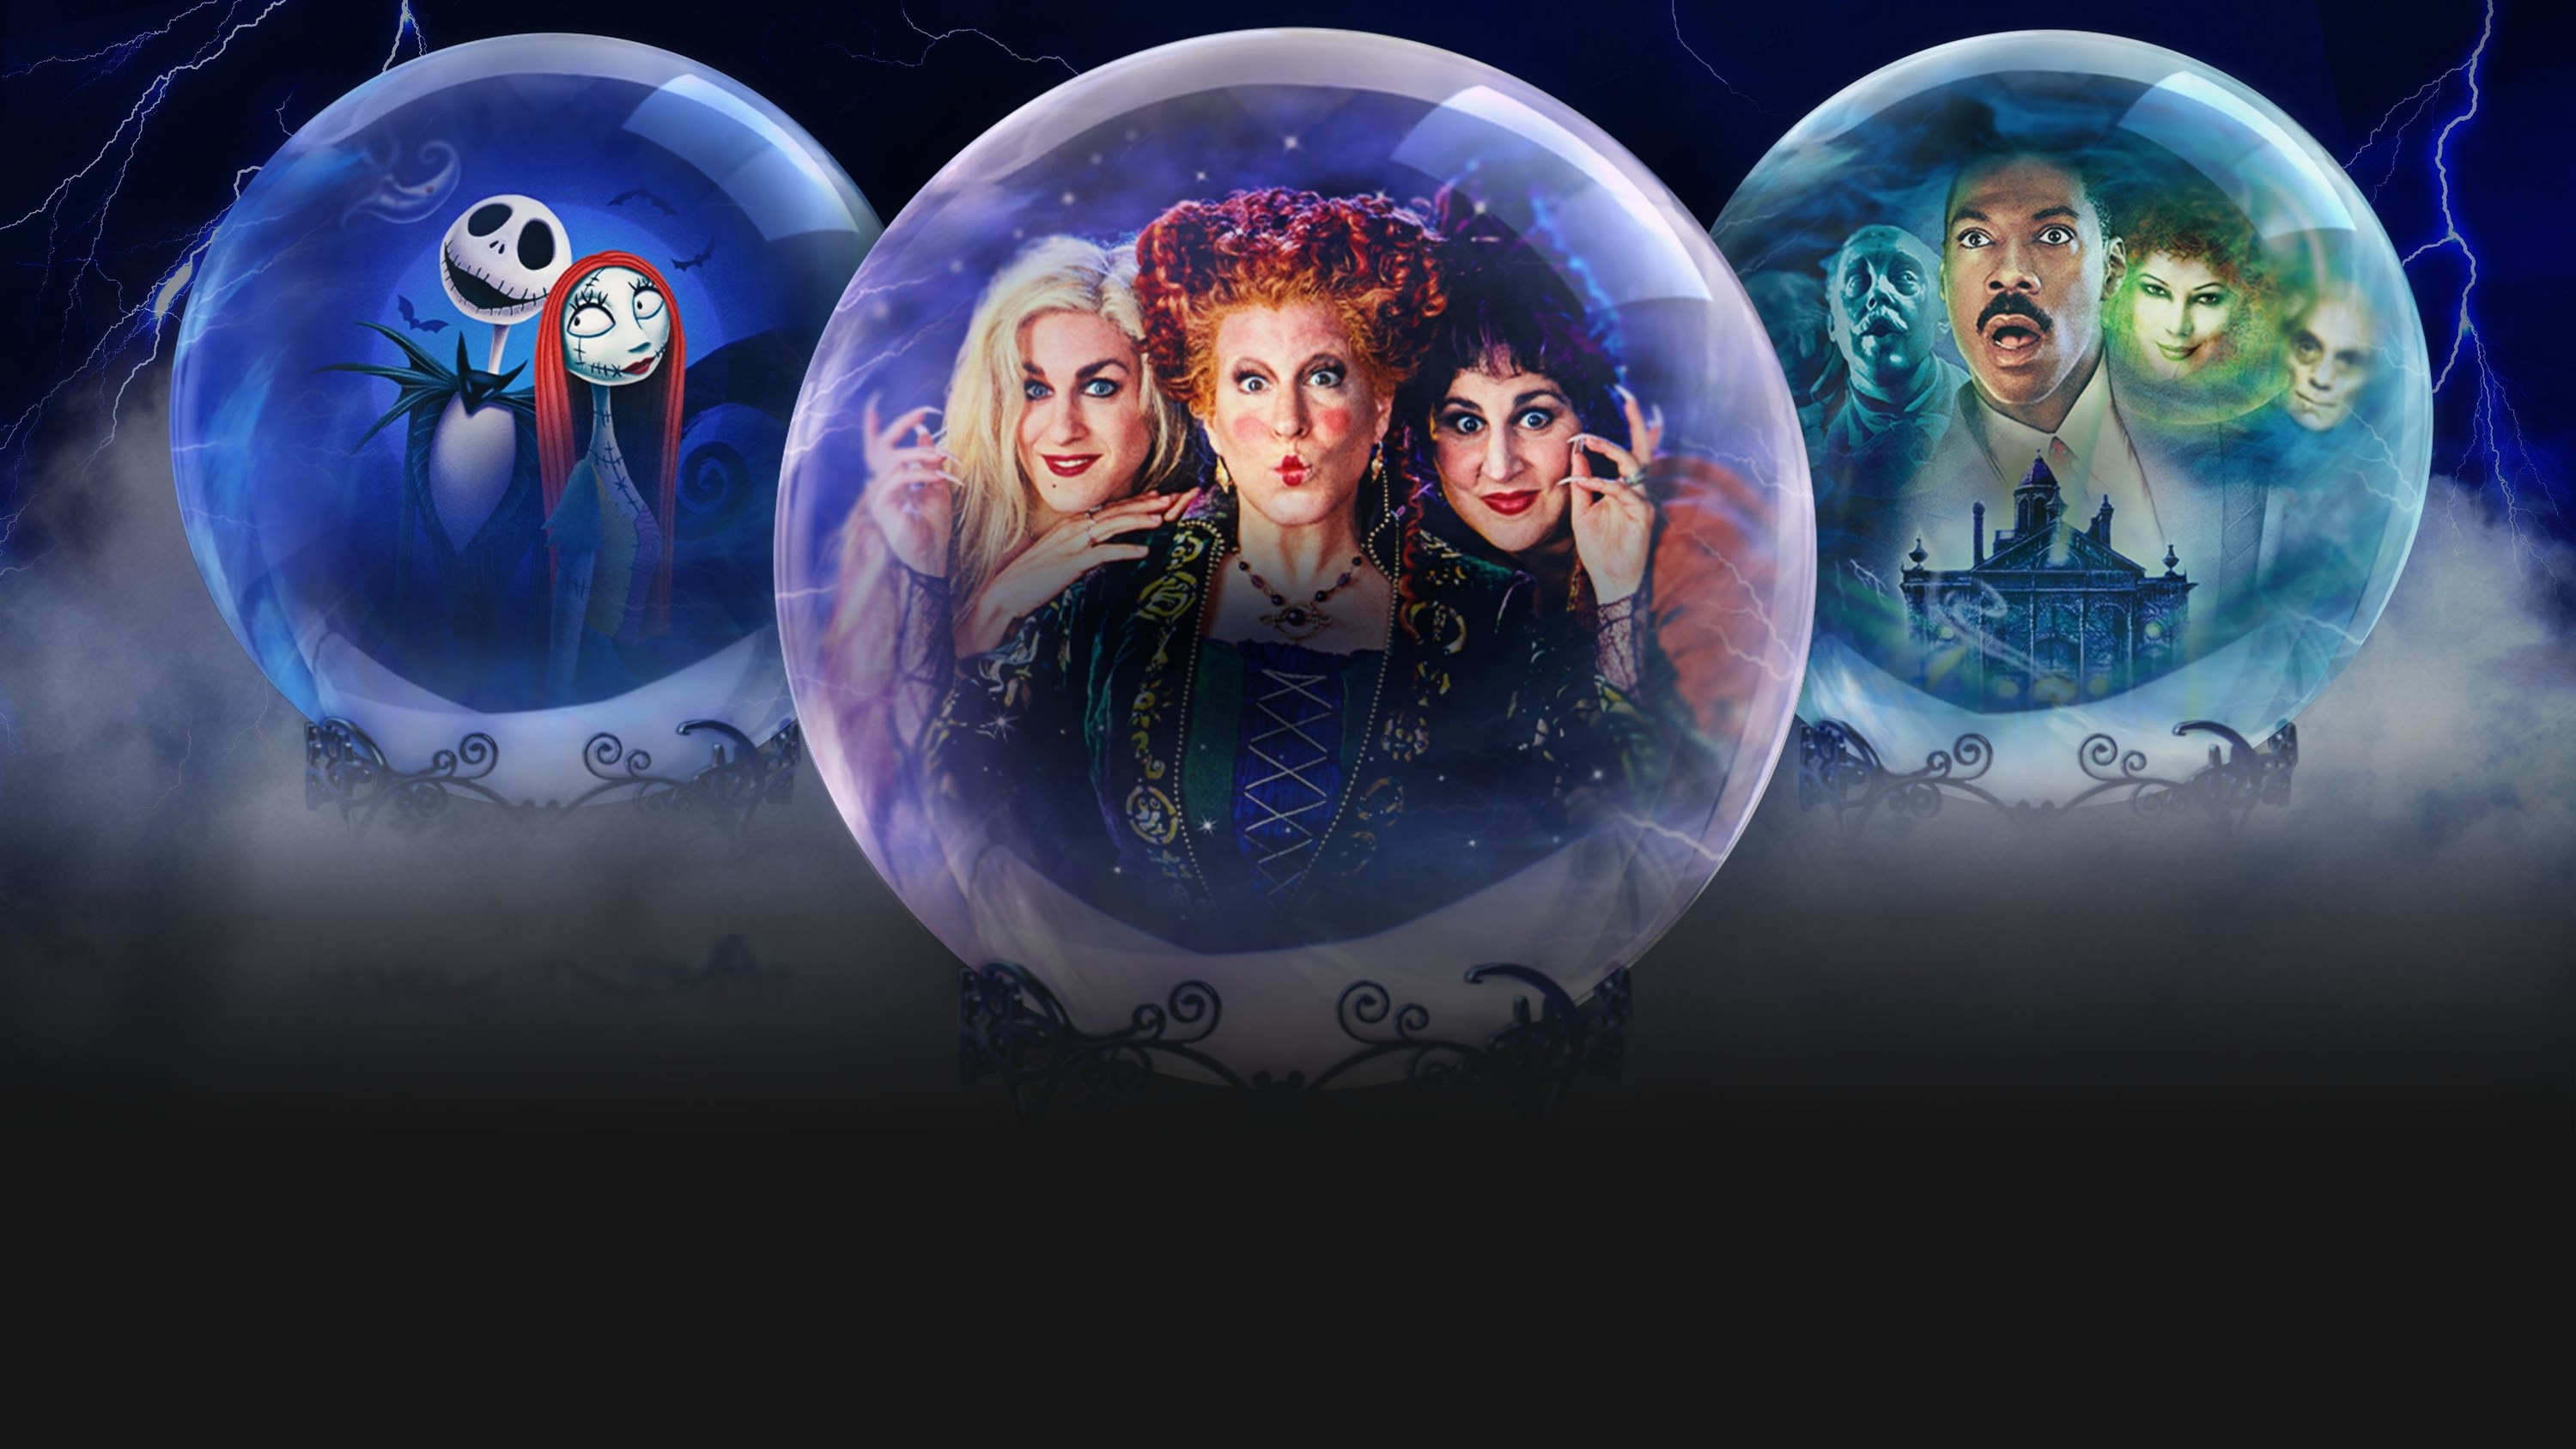 Graphics for a few Halloween movies available on Disney+